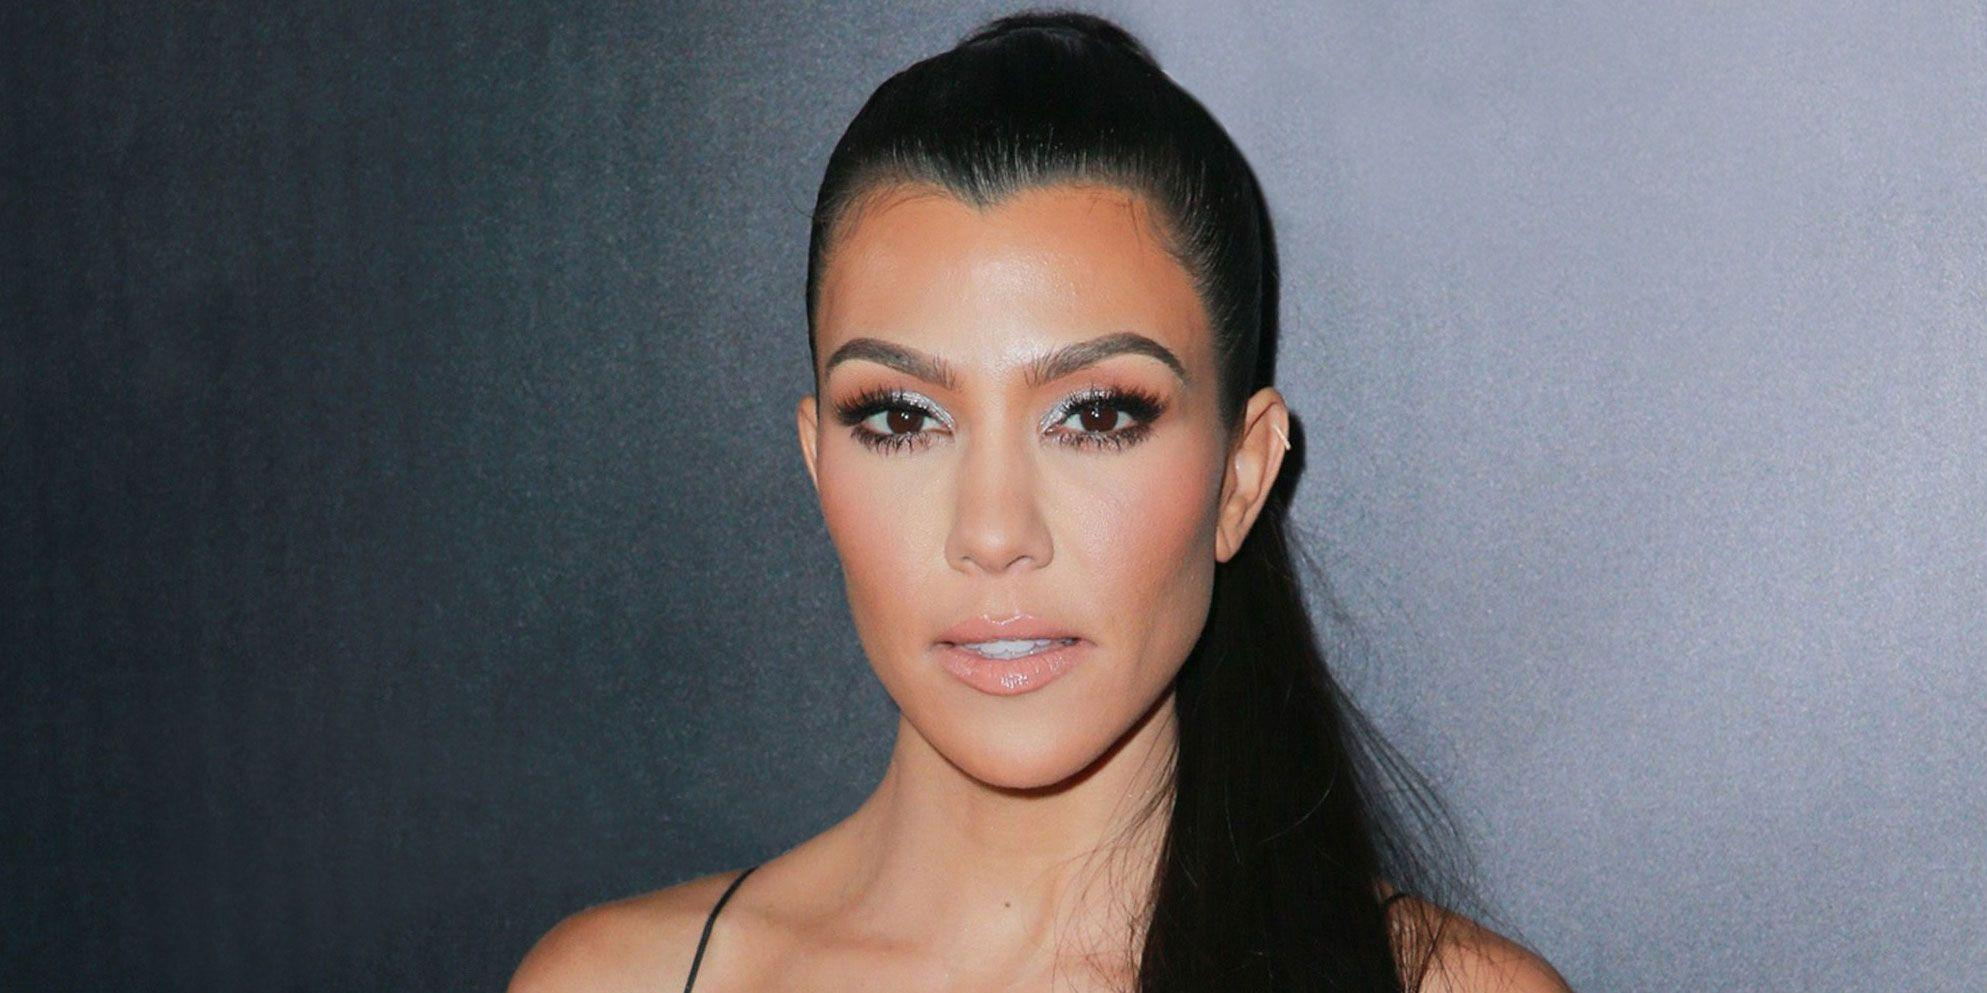 KUWK: Kourtney Kardashian Discovers Money And An iPad Were Stolen From Her And She Suspects It's Someone She Trusts